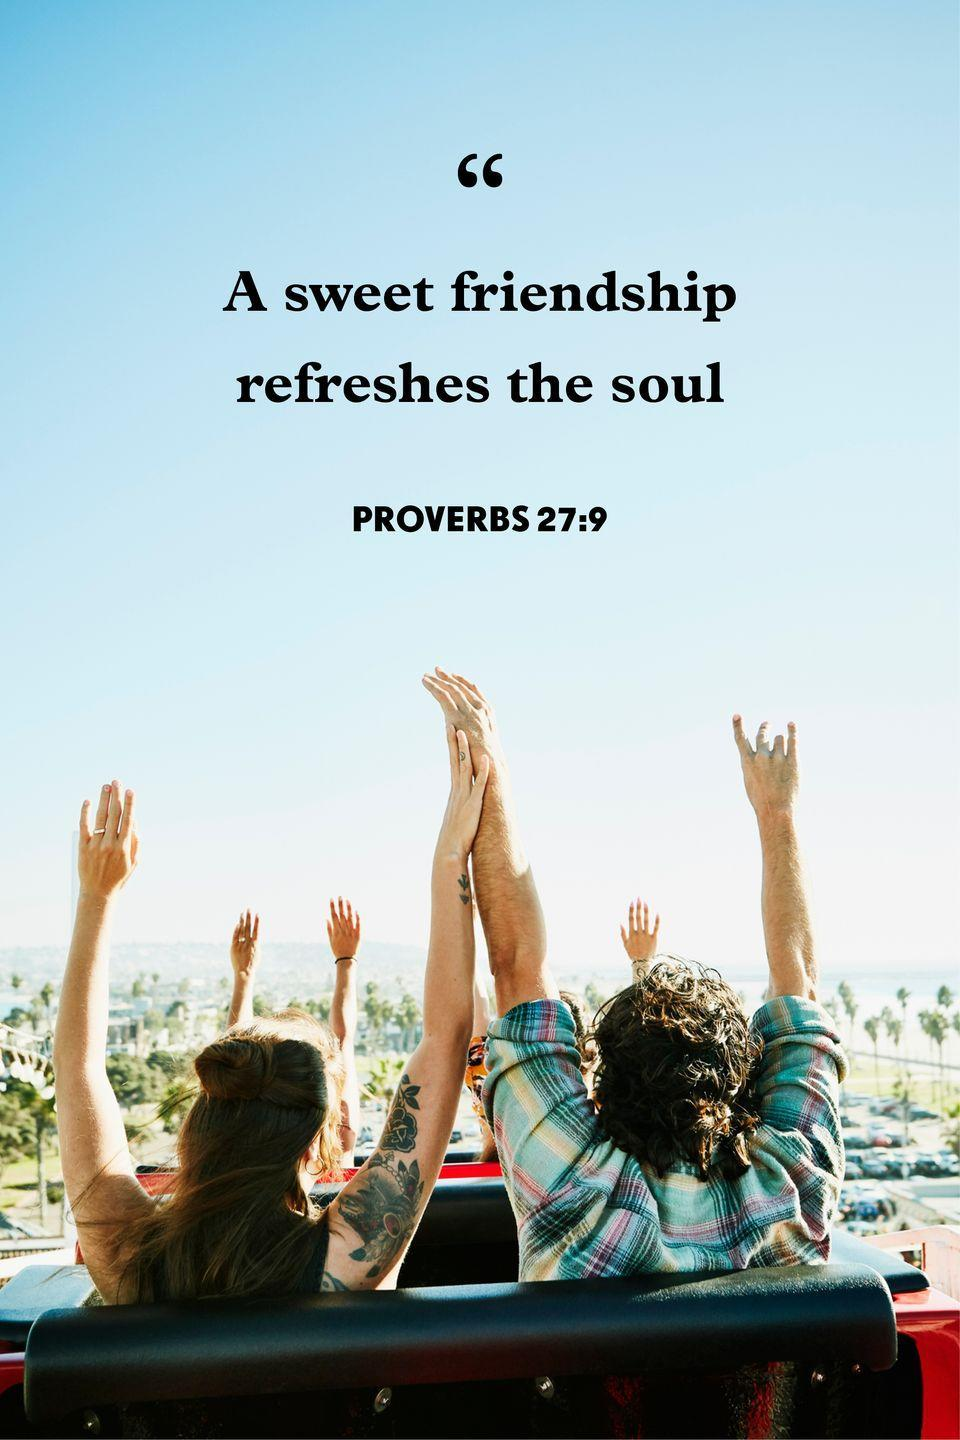 "<p>""A sweet friendship refreshes the soul.""</p>"